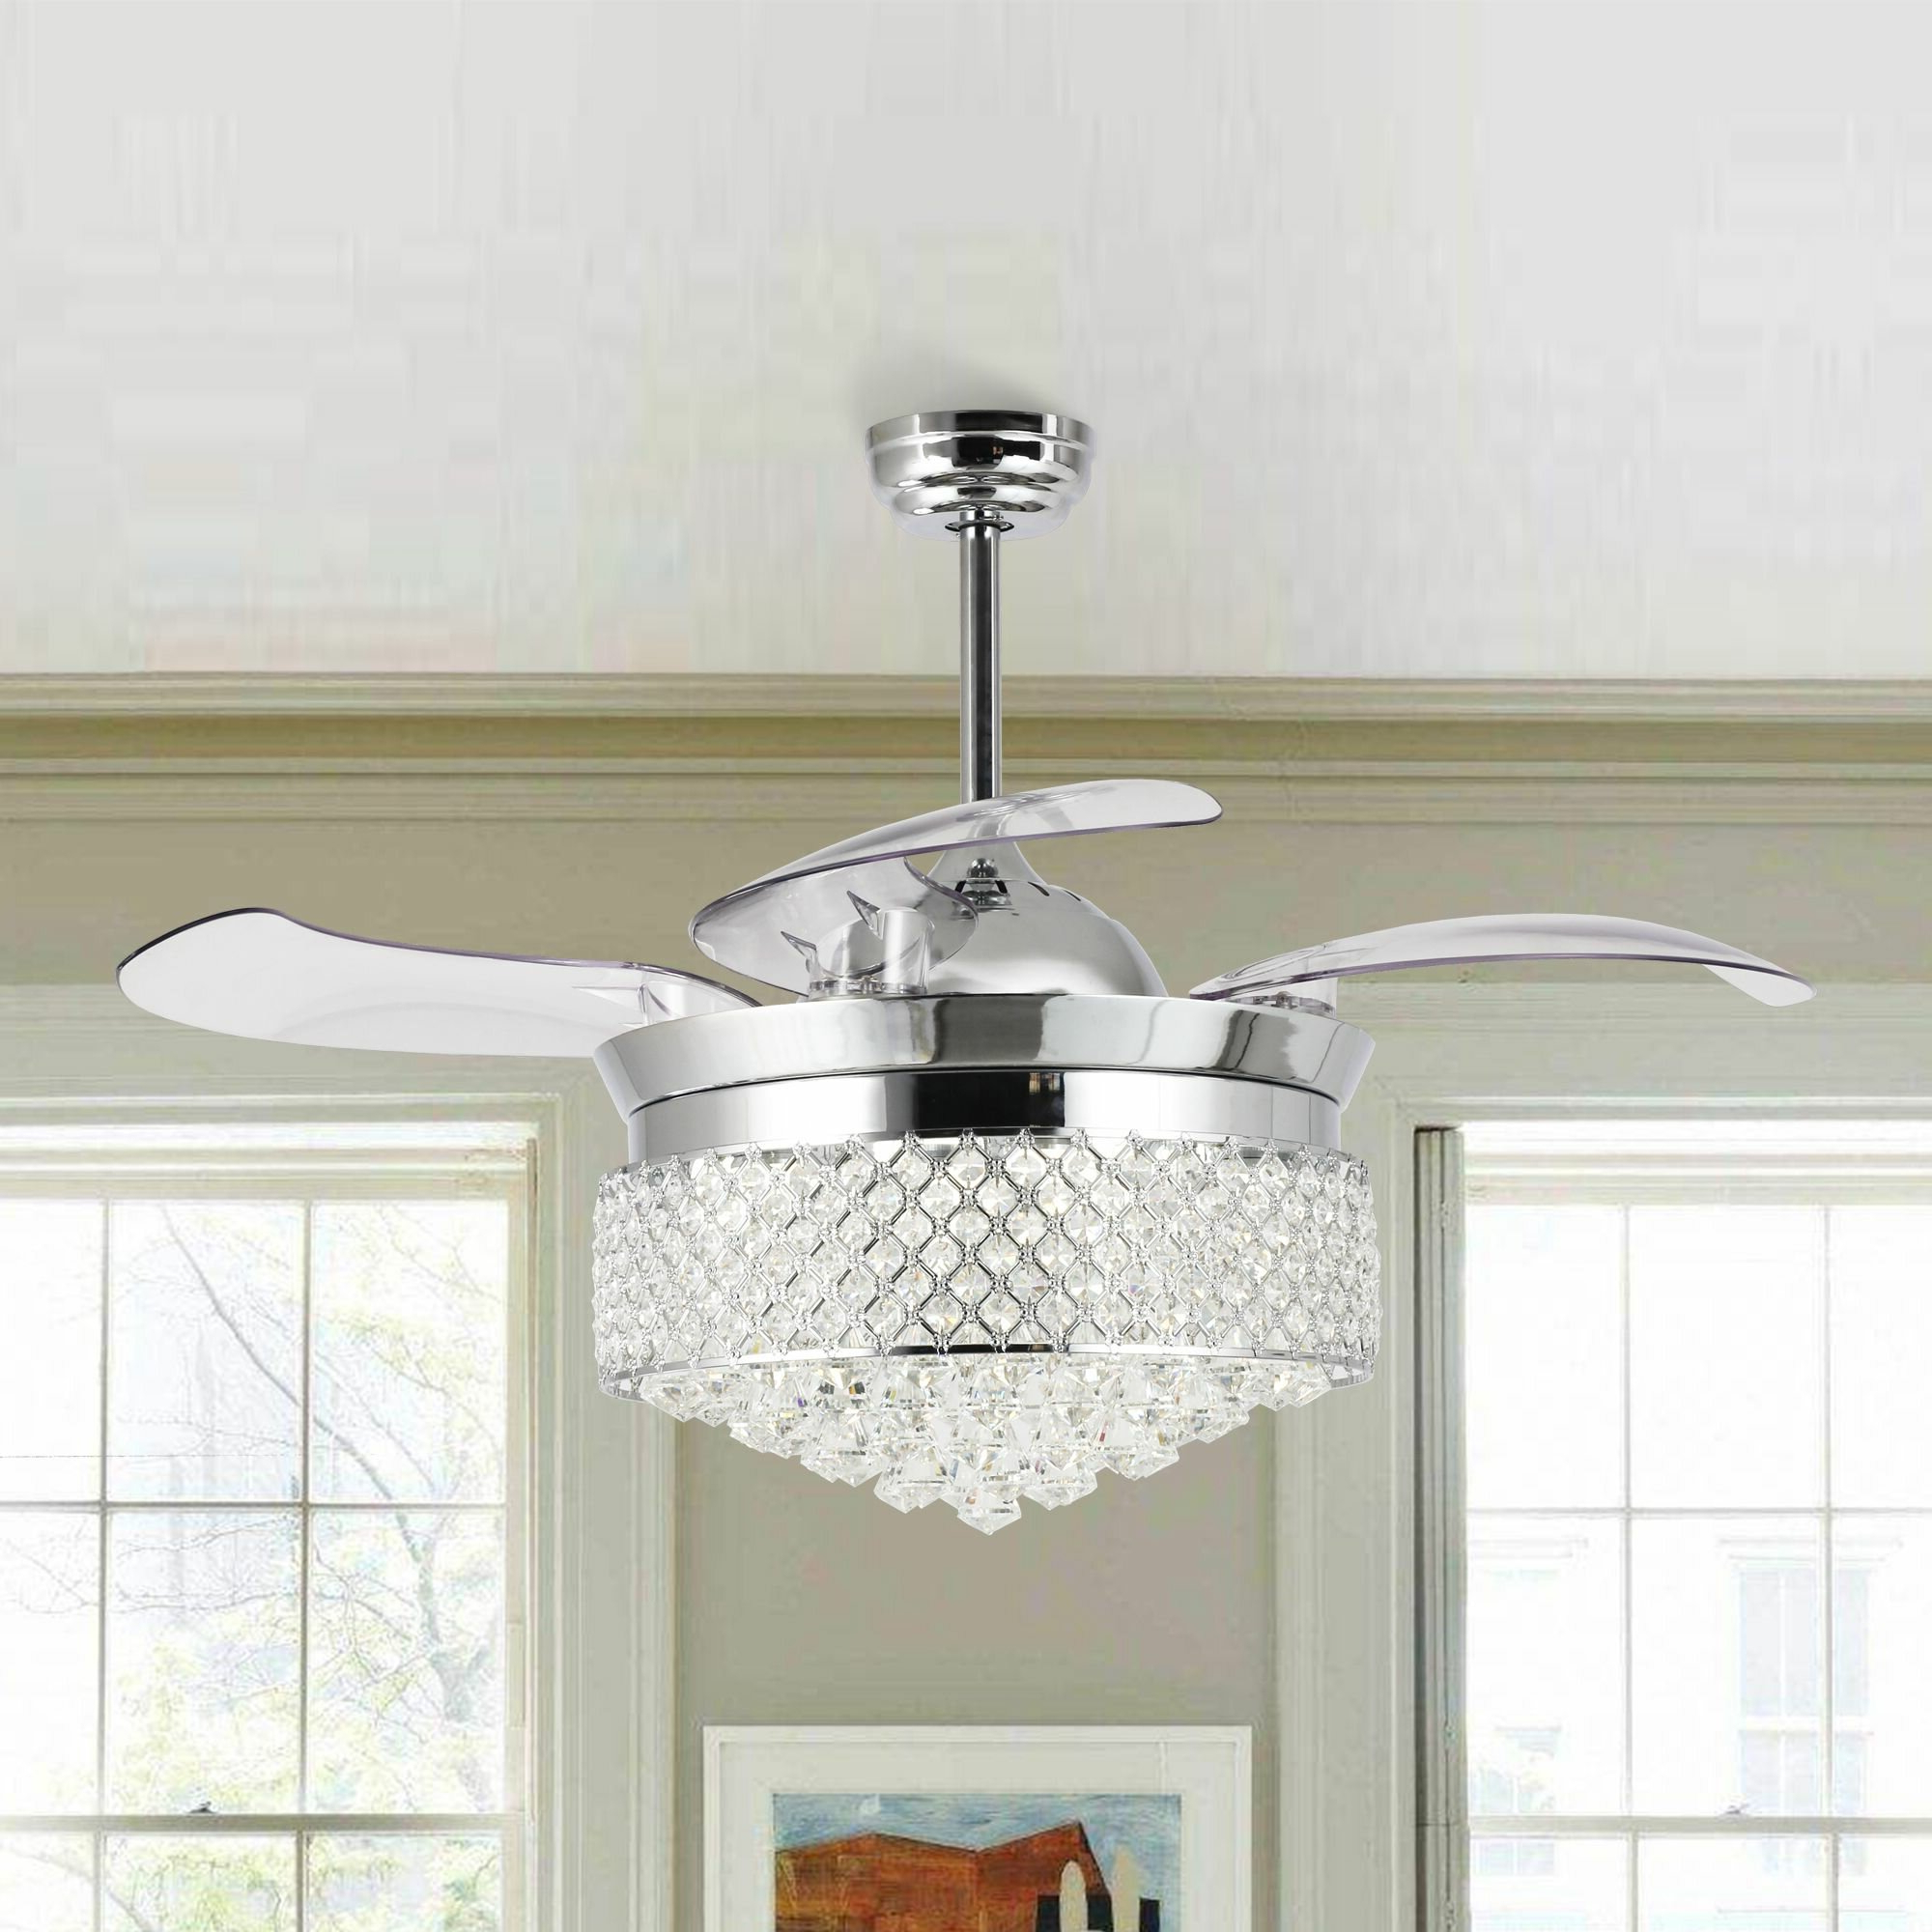 Marcoux Modern Crystal Foldable 4 Blade Led Ceiling Fan With Remote, Light  Kit Included Pertaining To Most Recently Released Servantes Retractable 4 Blade Ceiling Fans With Remote (View 10 of 20)